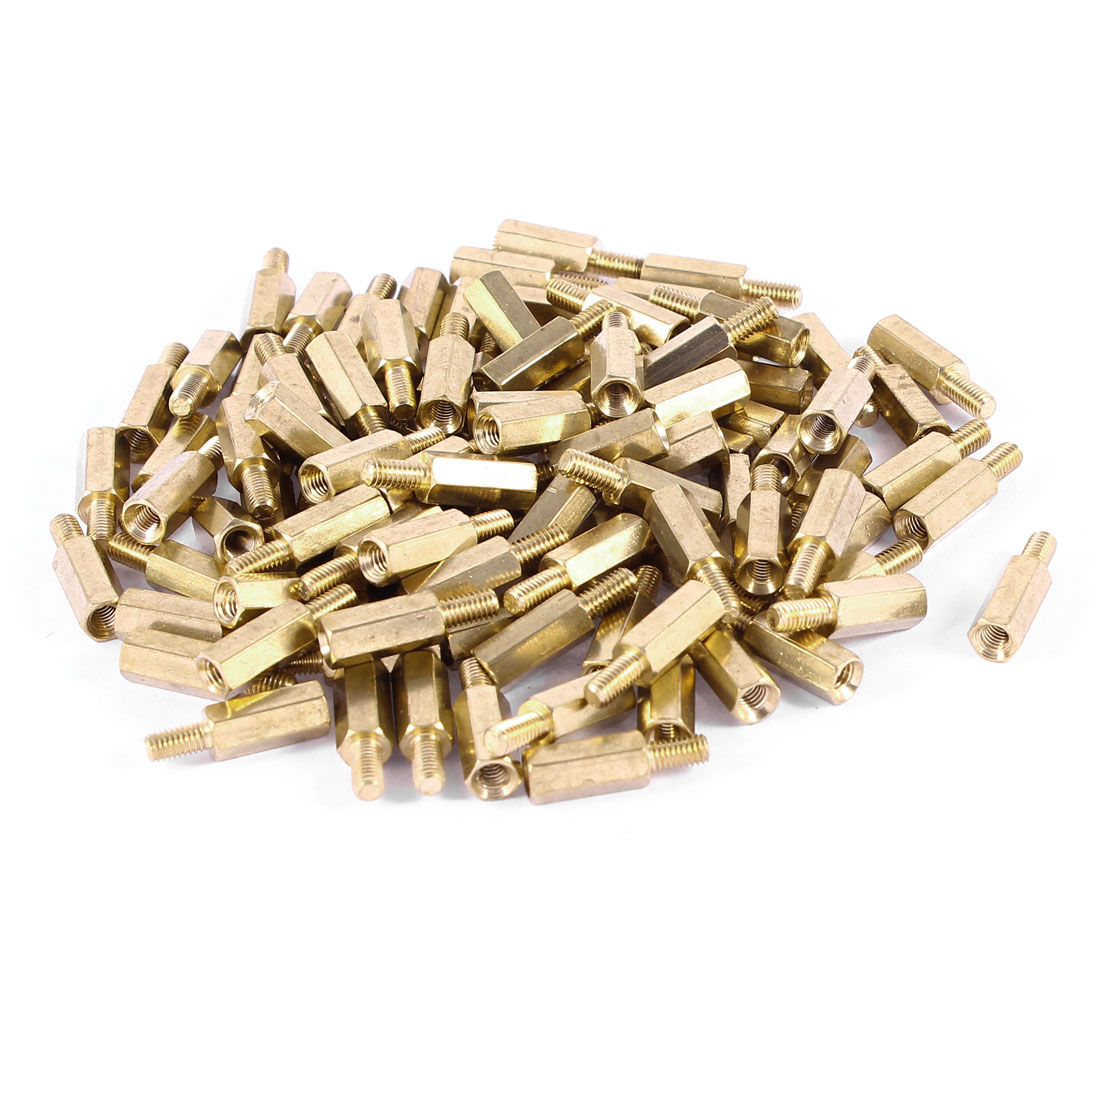 100 Pcs Brass Hex Standoff Spacer M3x11mm Female to M3x6mm Male M3 11+6mm